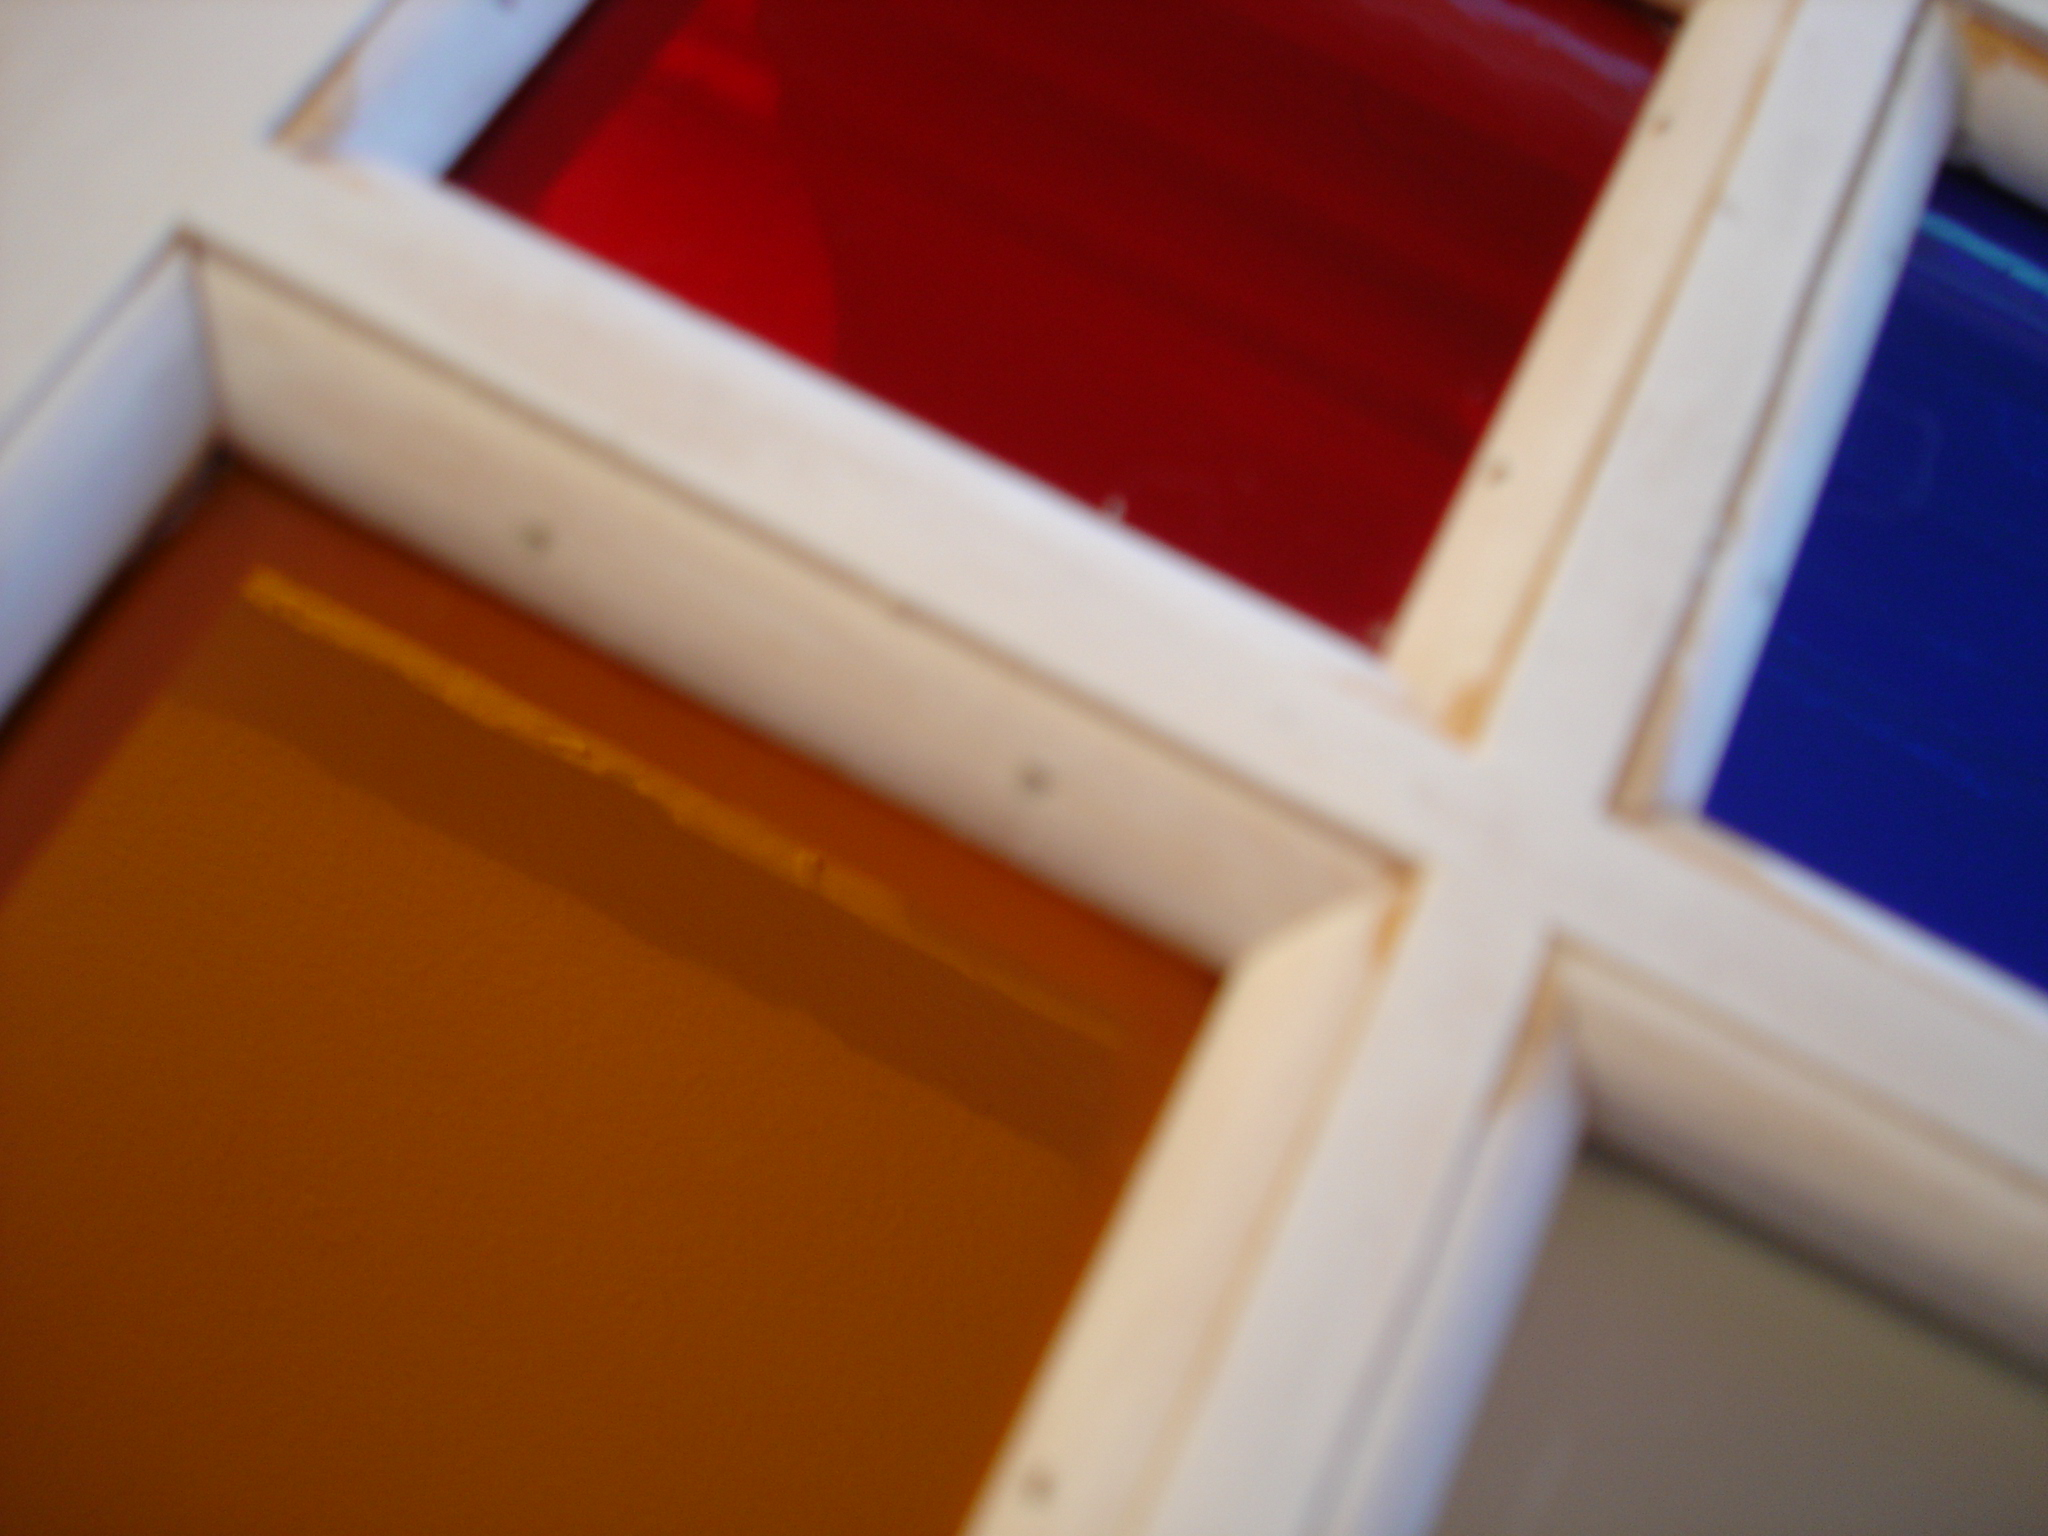 Panes pressed into glazing putty and secured with baton strips